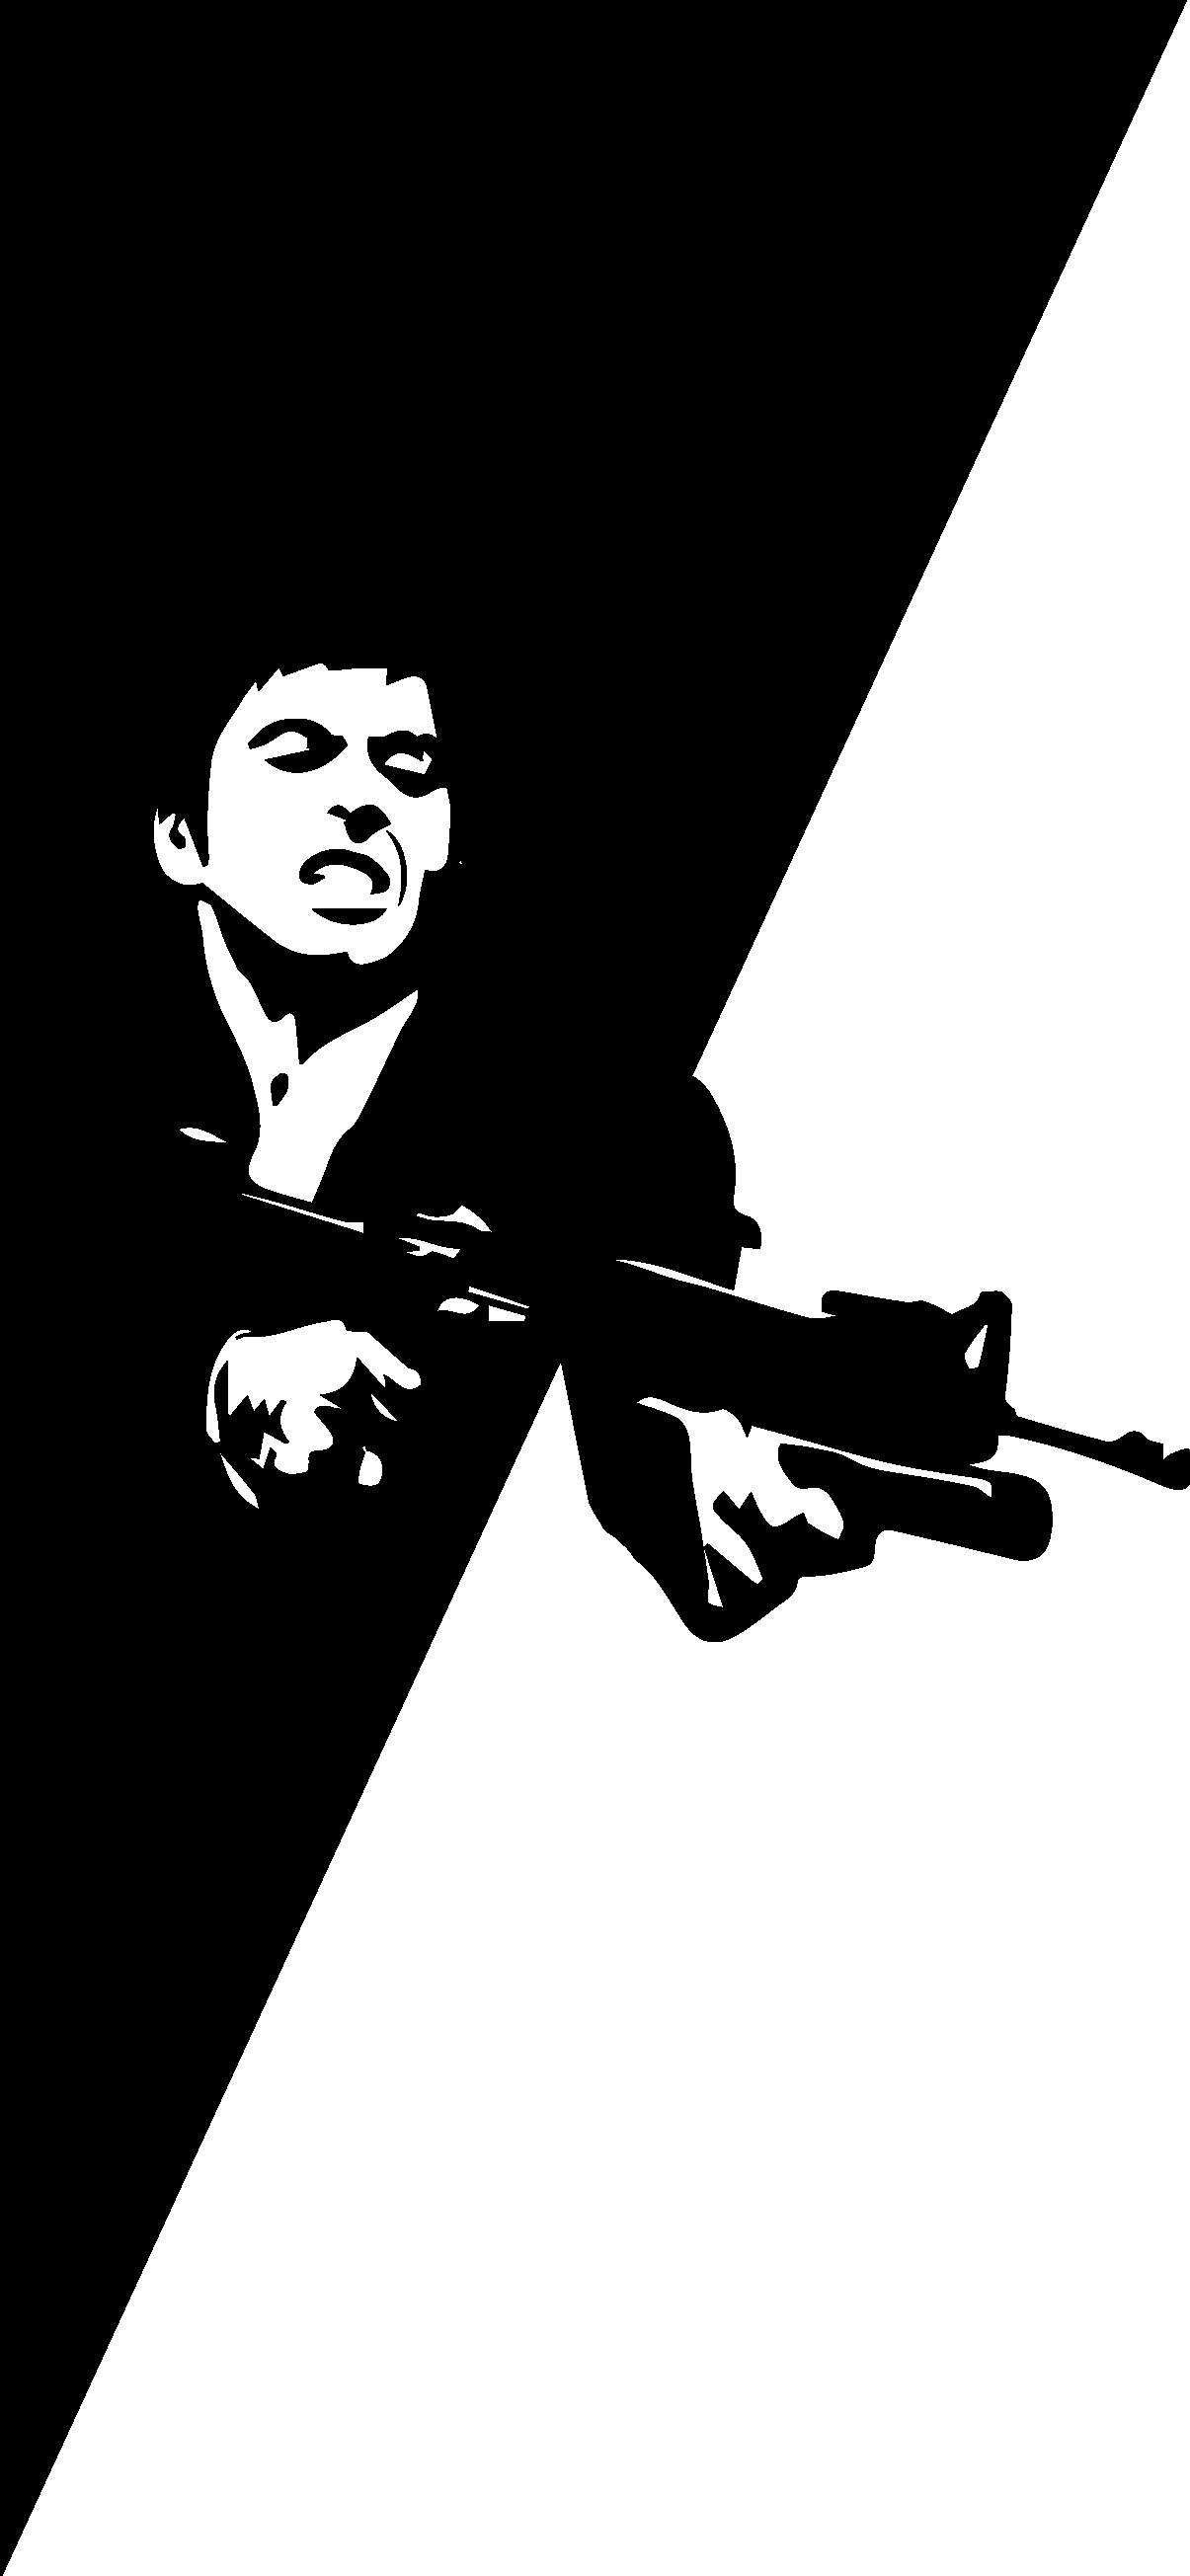 SCARFACE WALLPAPER AMOLED